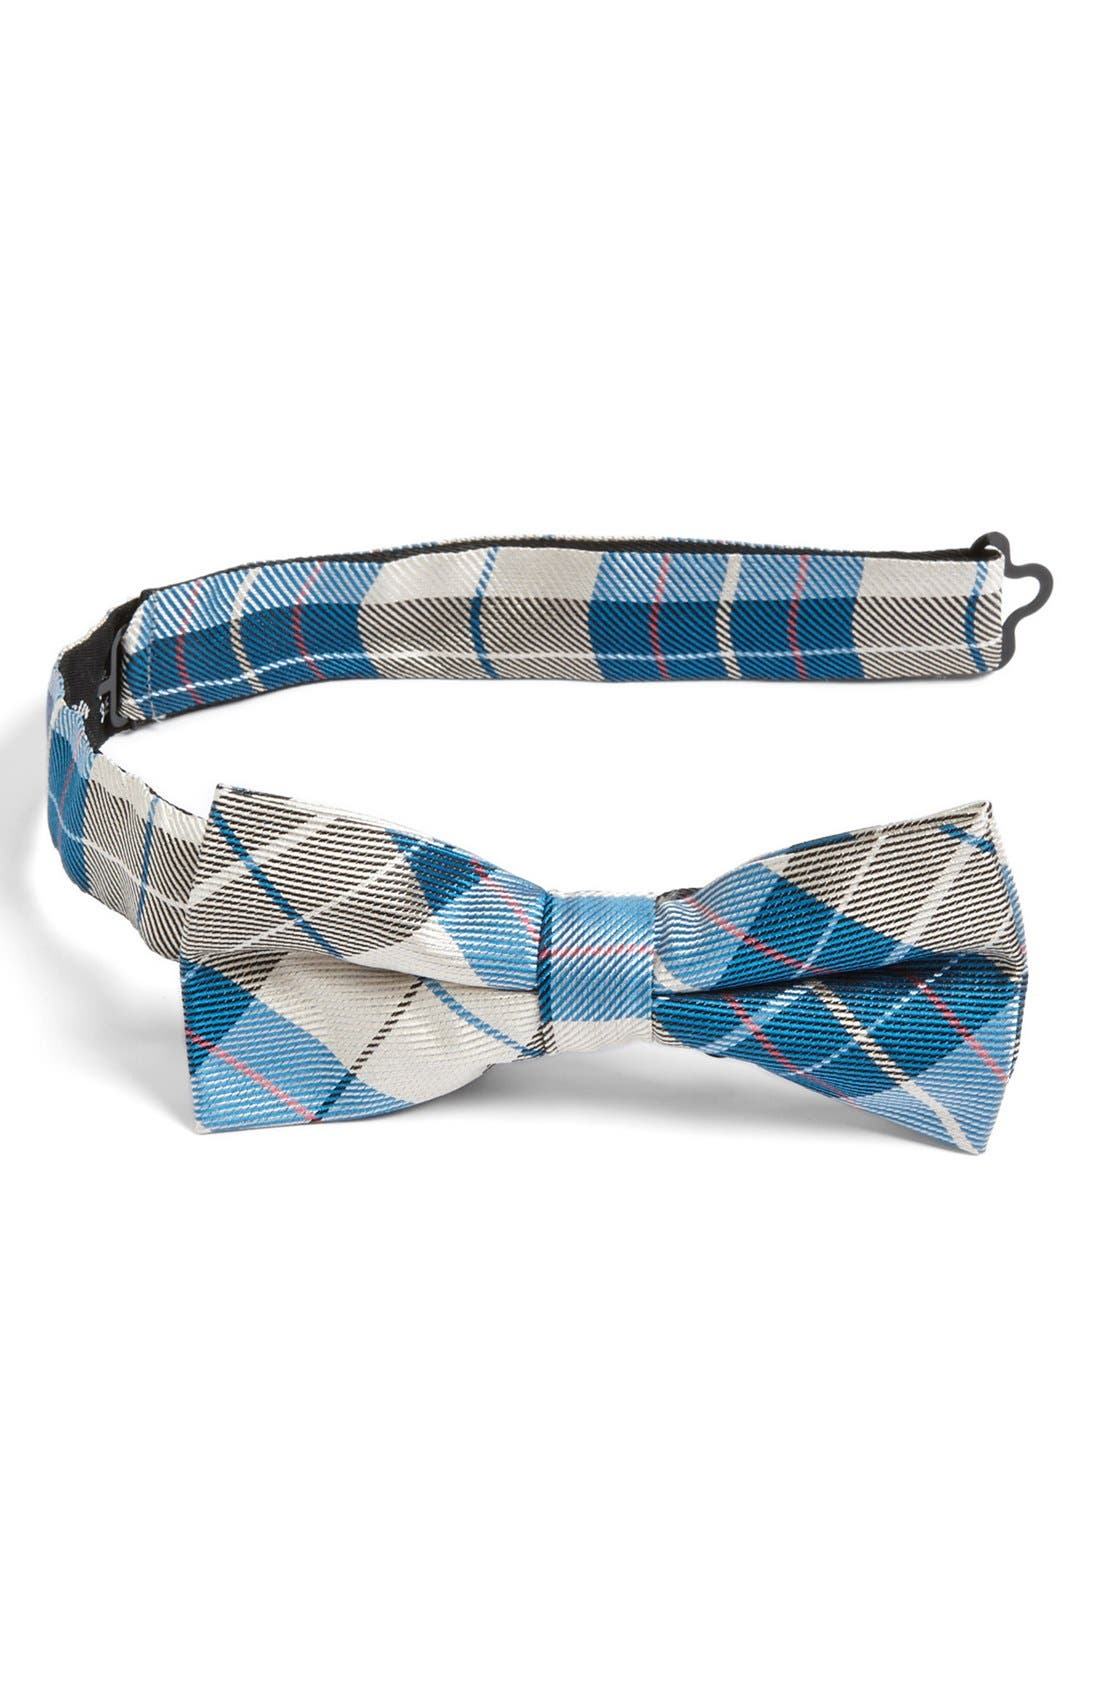 Alternate Image 1 Selected - 1901 Silk Bow Tie